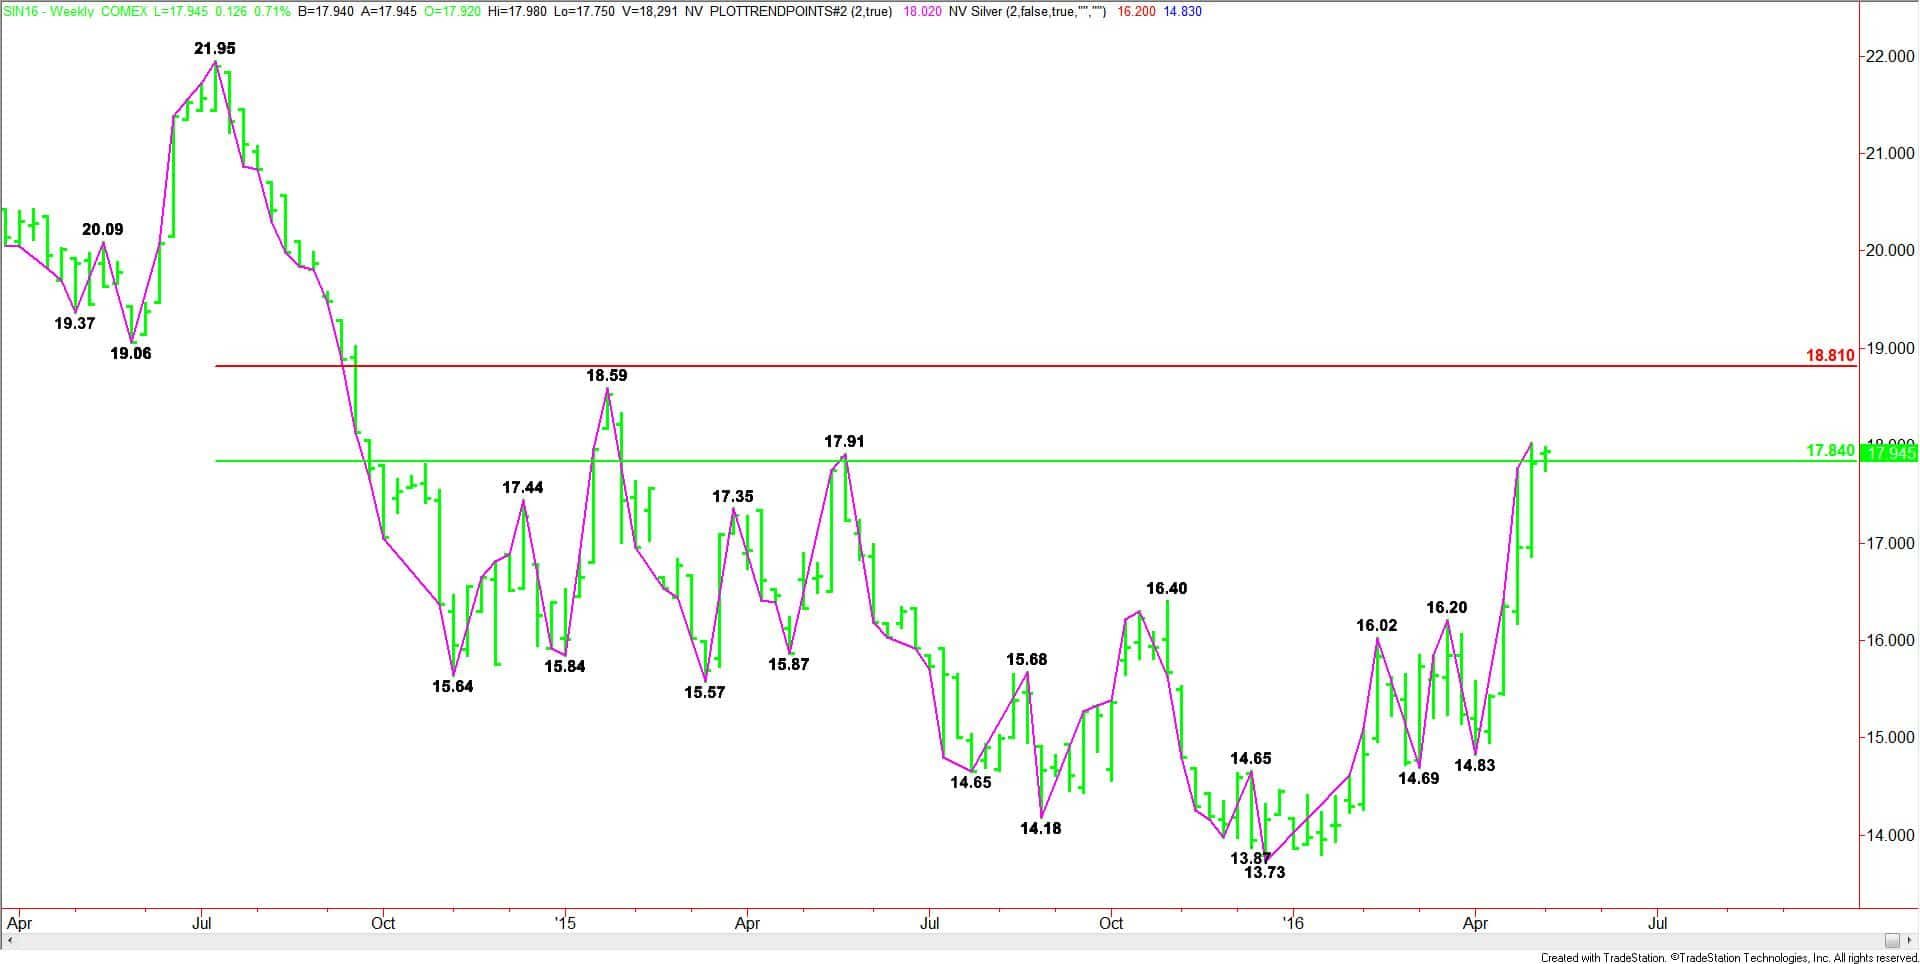 Weekly July Comex Silver